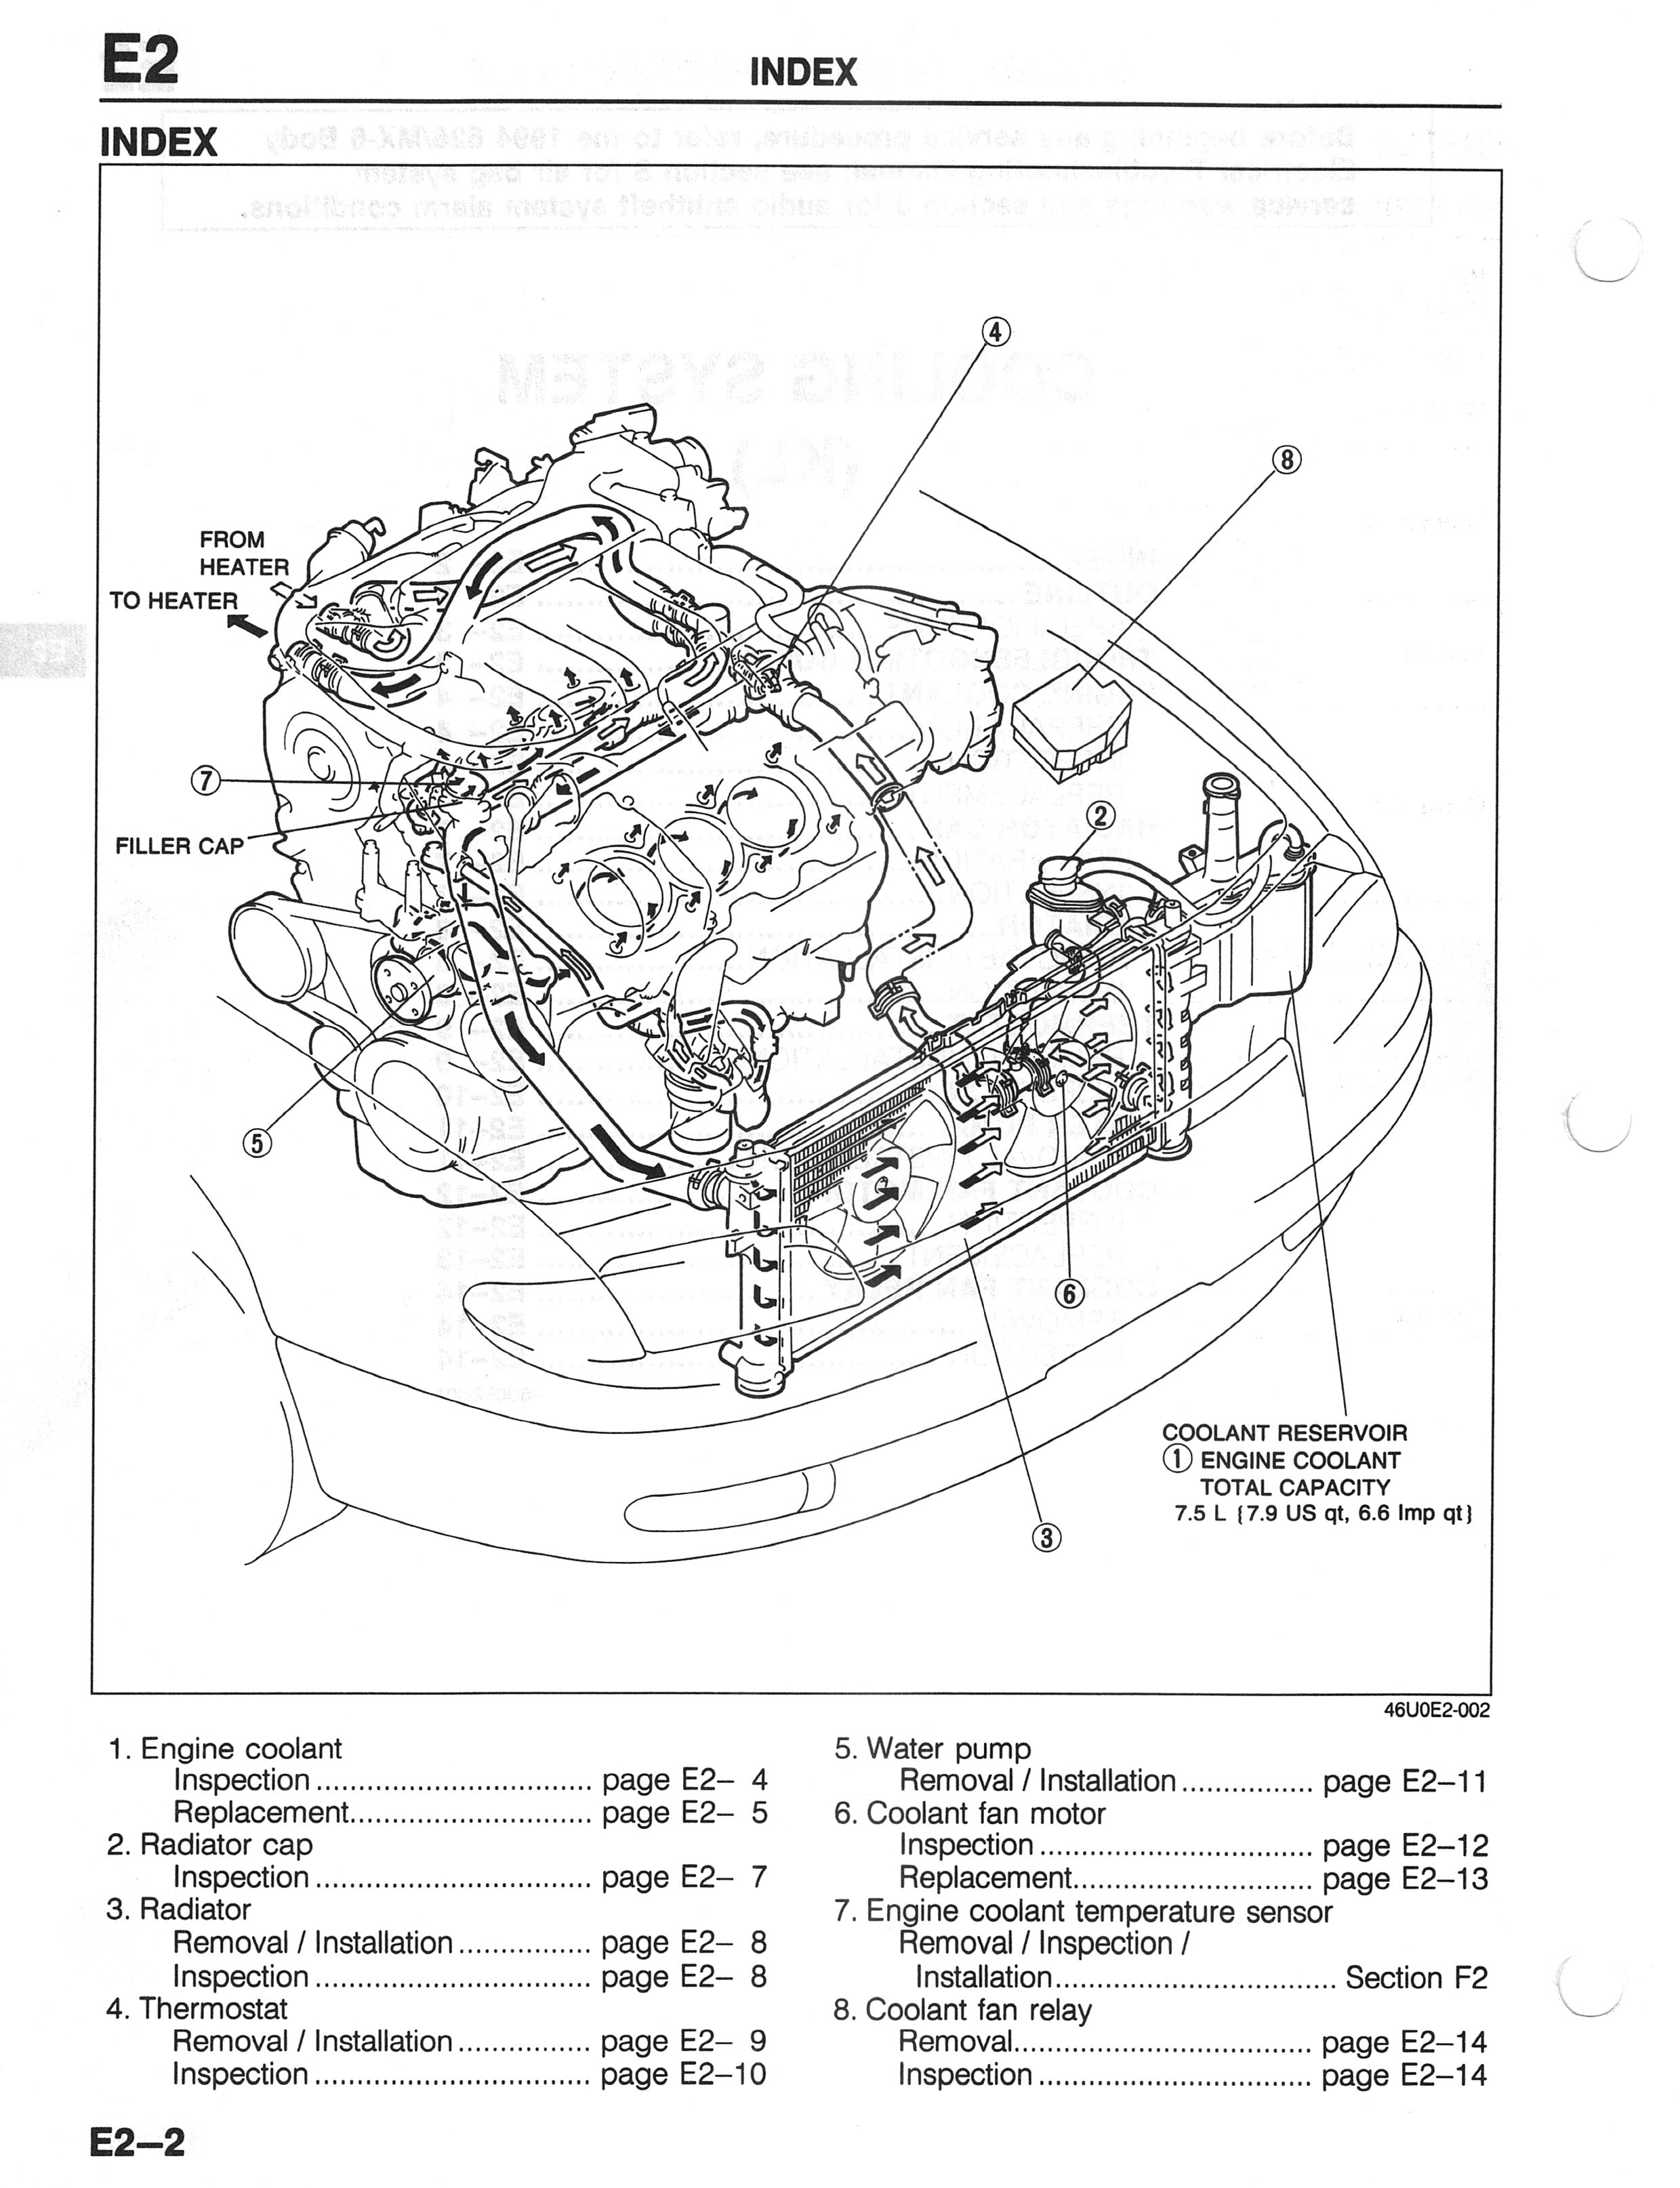 2003 Mazda 6 Headlight Diagram Trusted Wiring 2004 2006 Radiator Auto Electrical U2022 2002 Protege5